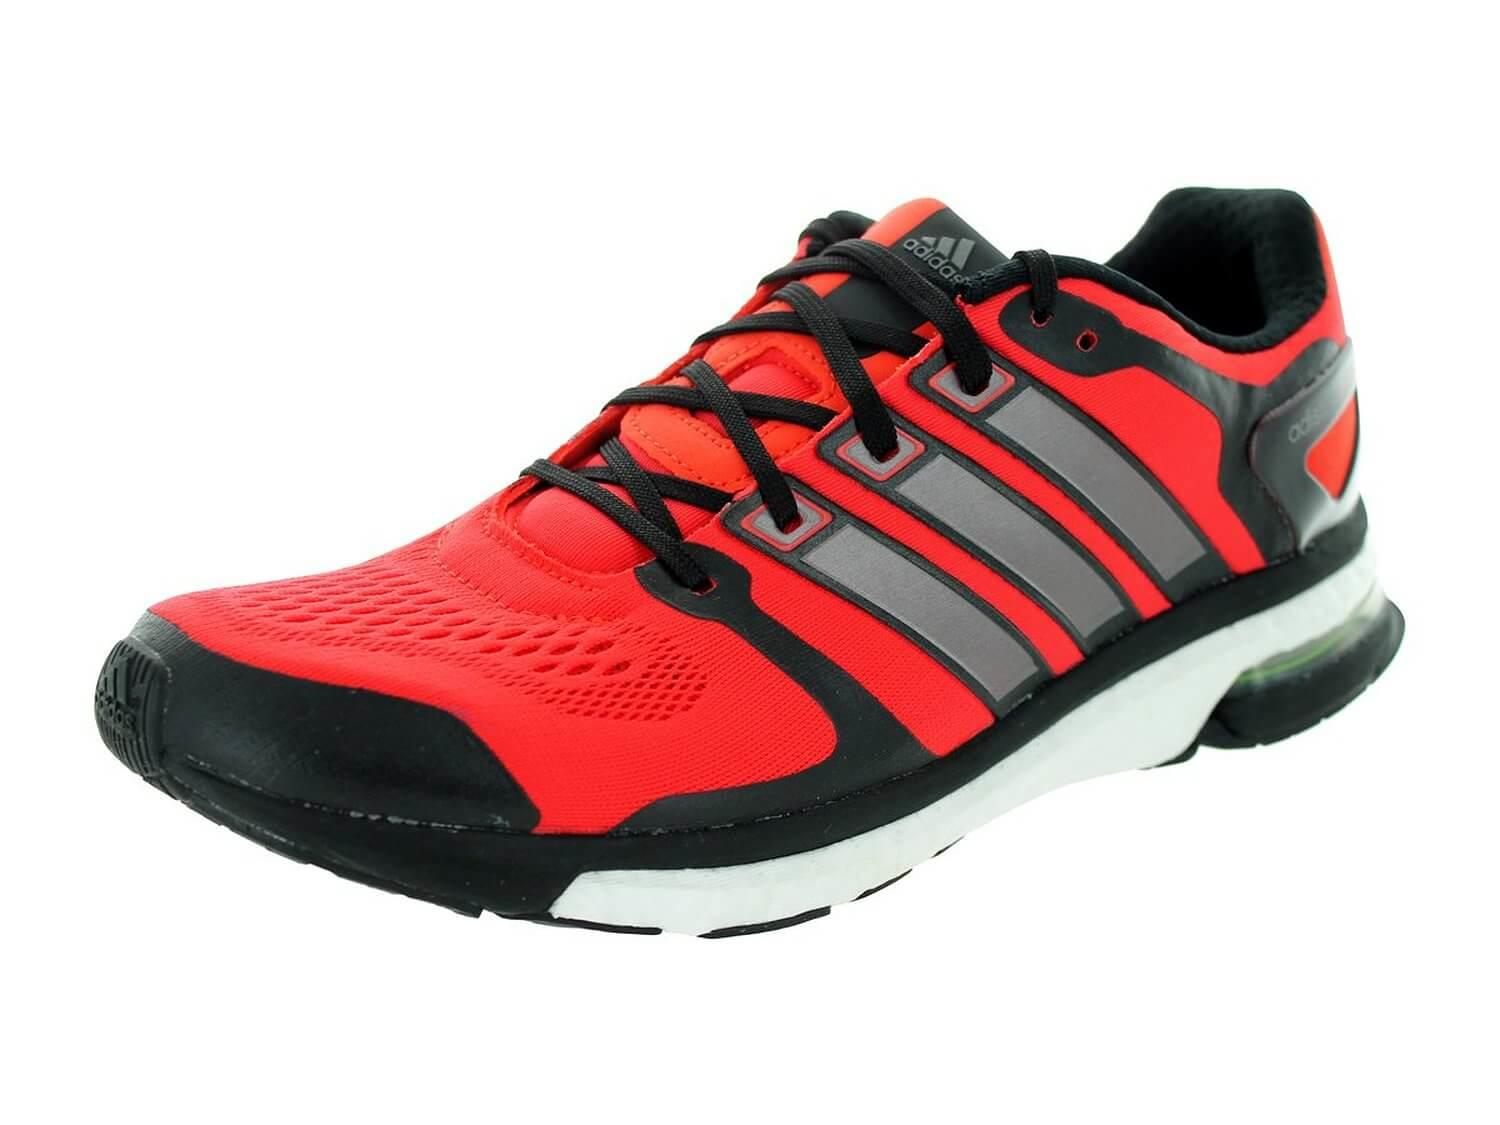 the Adidas Adistar Boost features great cushioning, flexibility, and responsiveness